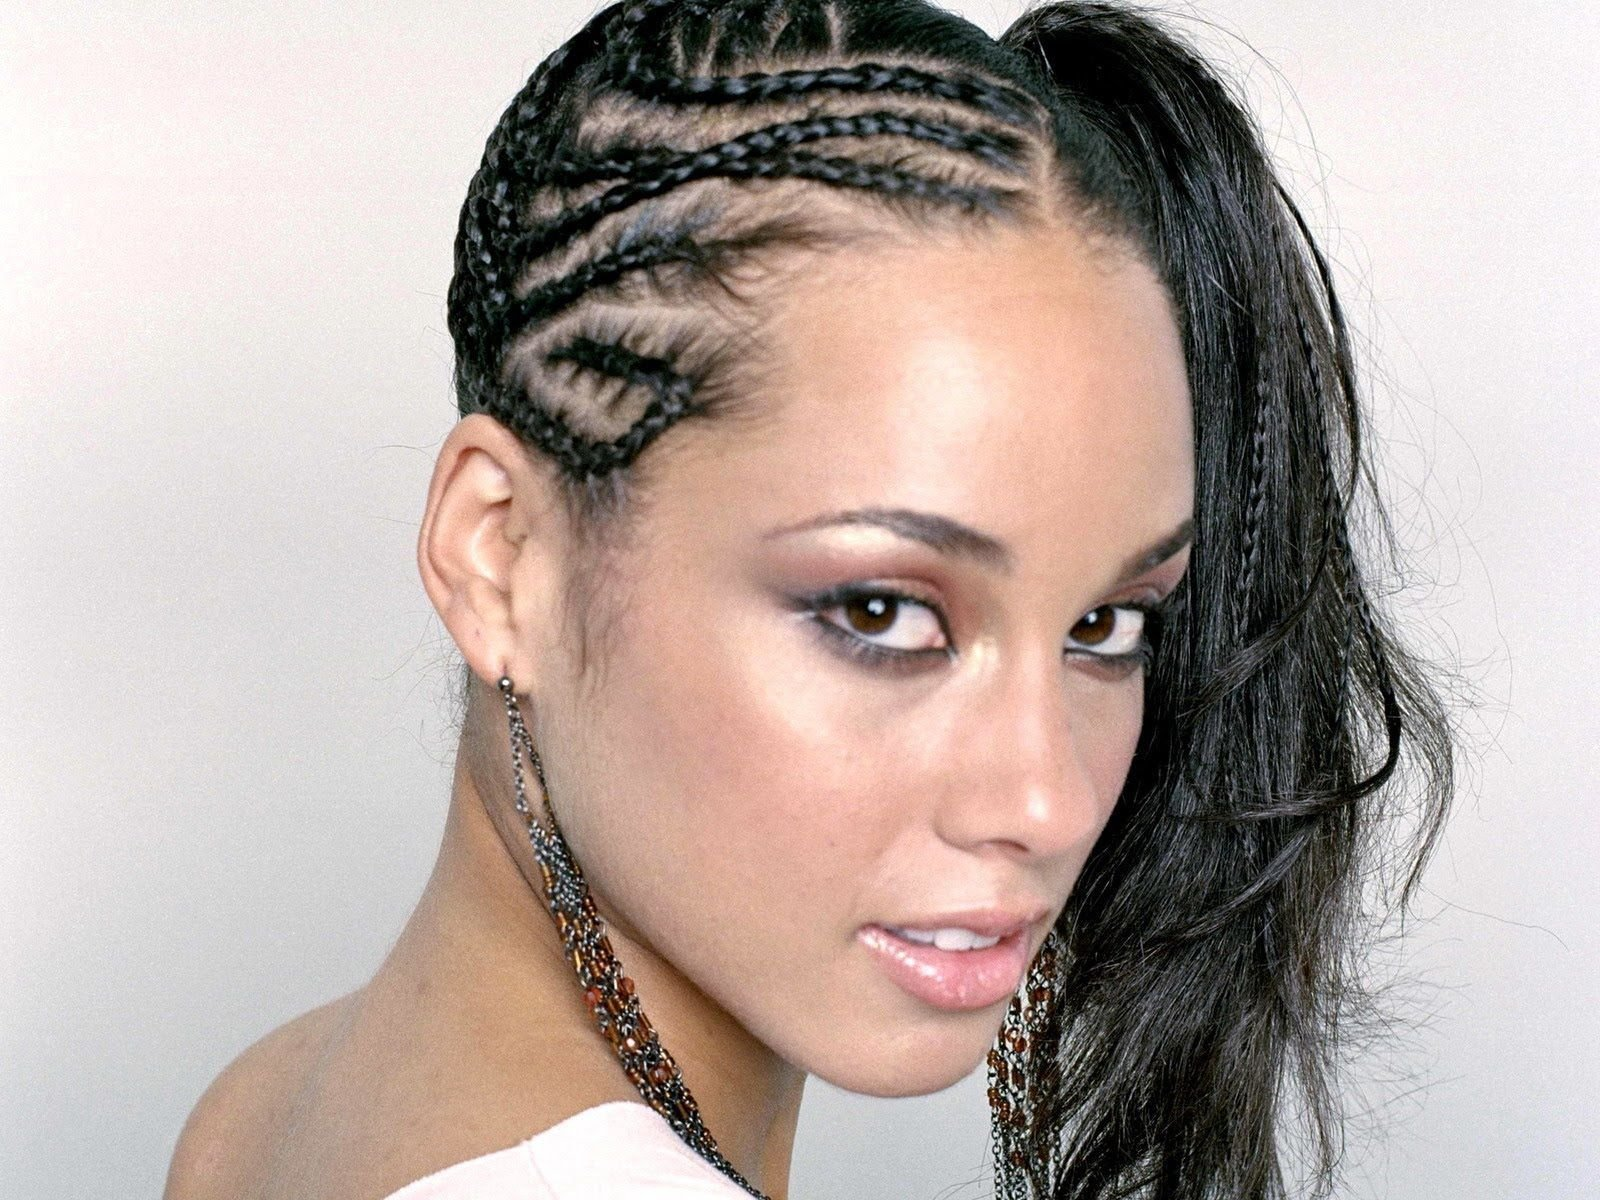 The Best Alicia Keys Braids Maxresdefault Jpg 1 More Knock Out Pictures